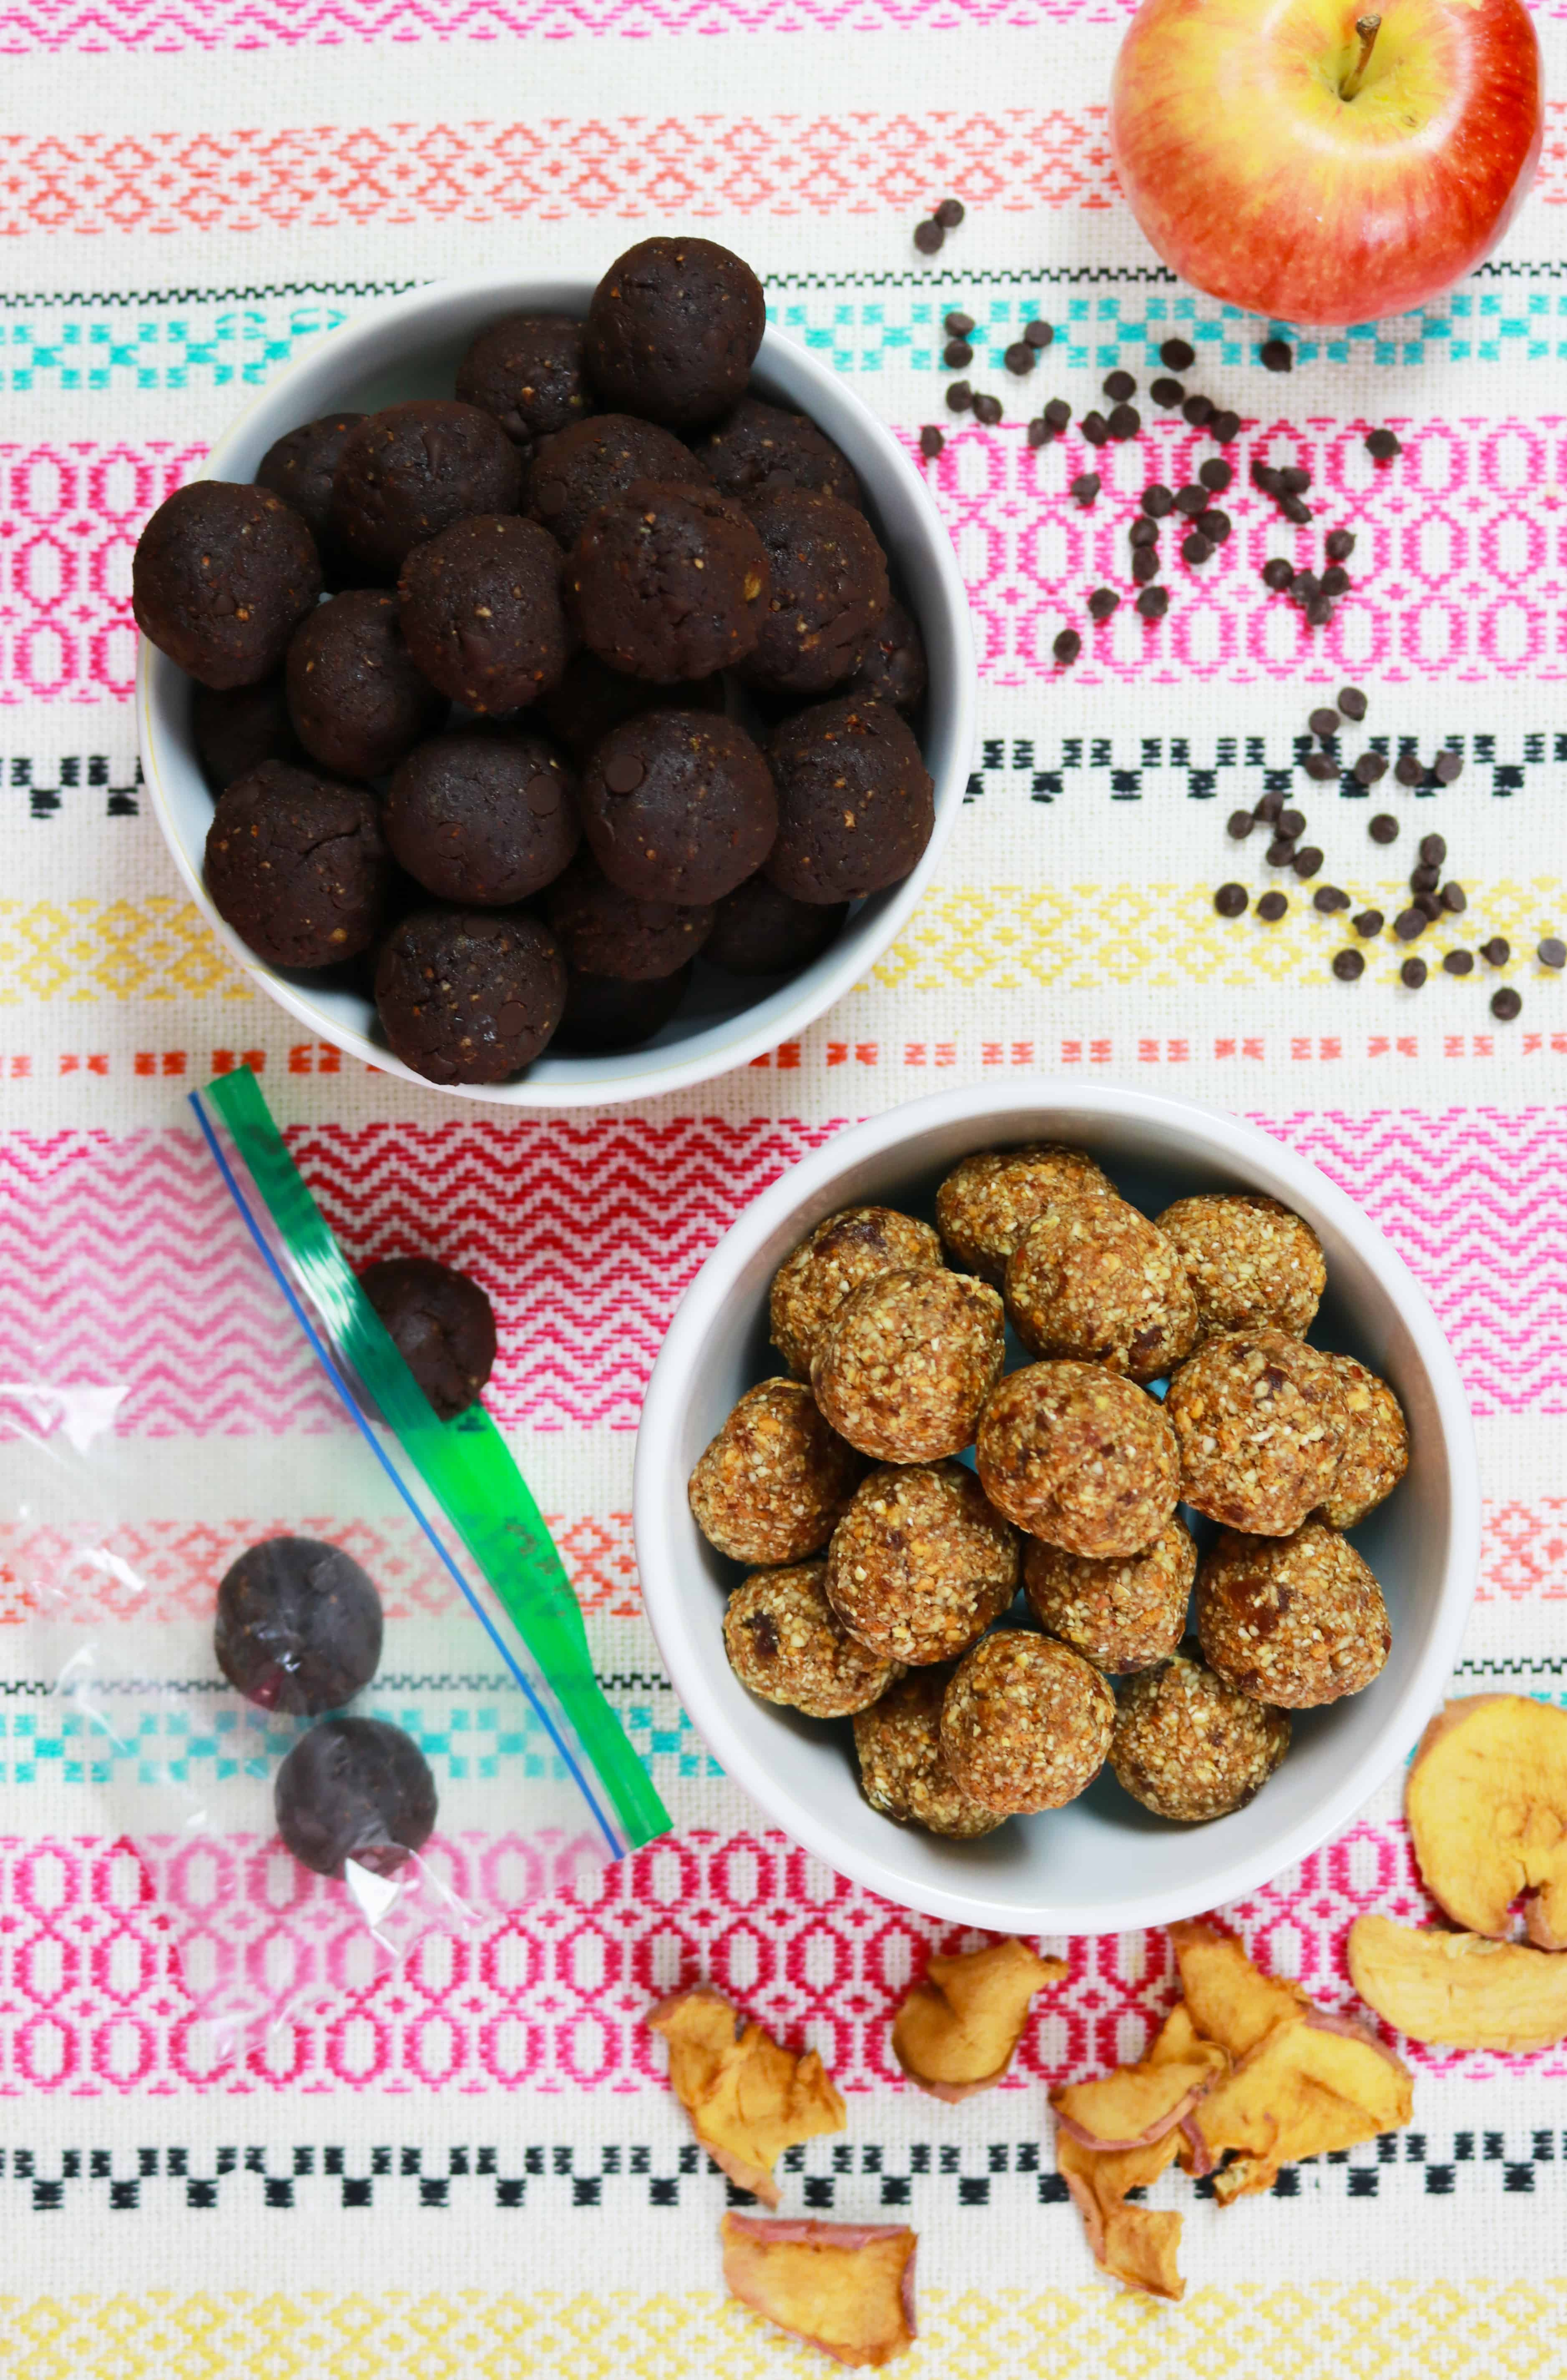 no bake energy bites, protein bites recipe, chocolate energy bites, healthy cooking, back to school, back to school snacks, back to school recipes #energybites #healthyenergybites,#energybitespinterest #energybiteshealthy #energybitesrecipes #itsrainingflour #healthyblog #recipes2017 #backtoschool